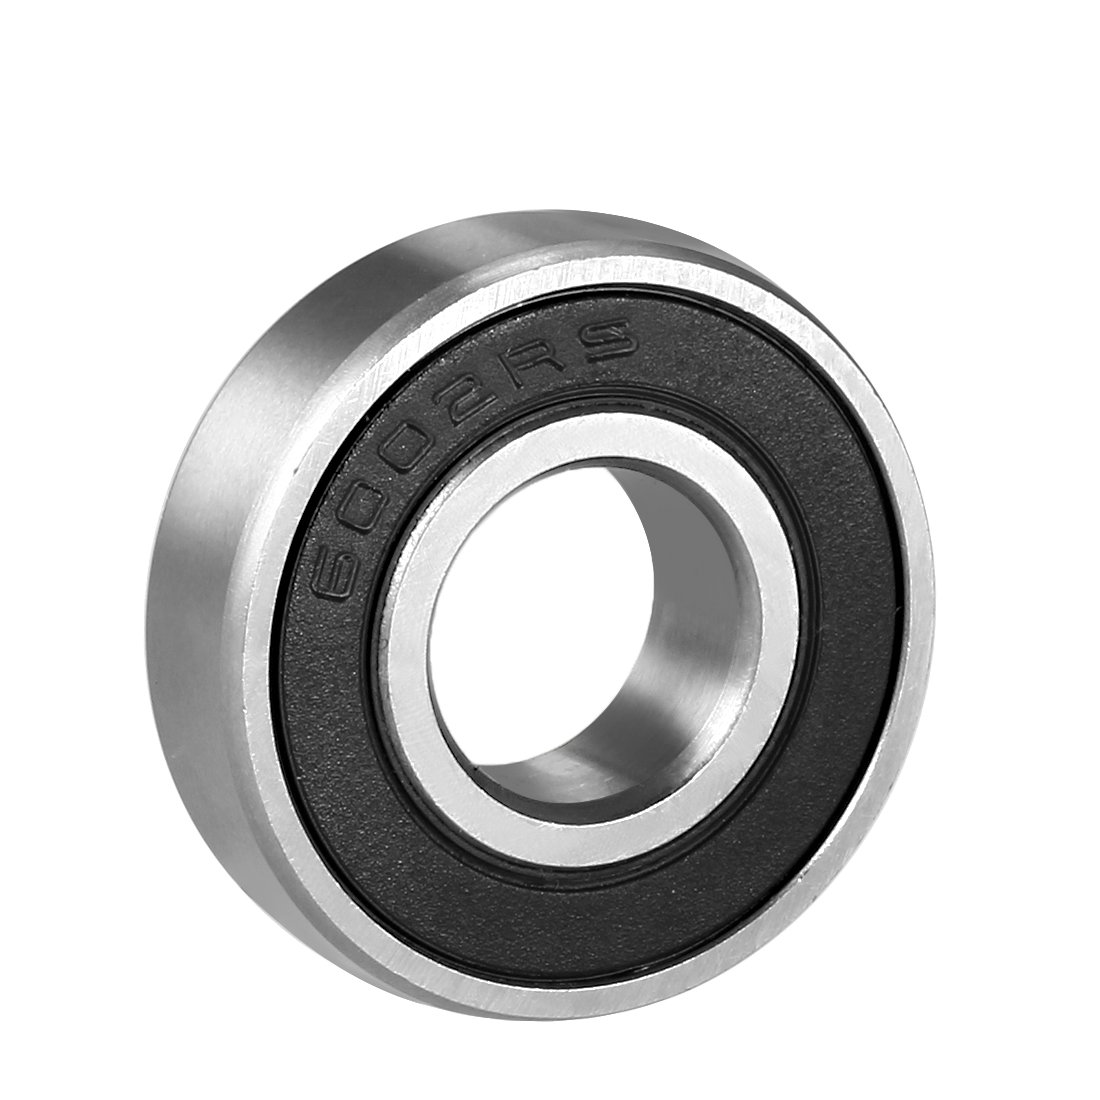 sourcingmap 6000RS Deep Groove Ball Bearing Single Sealed 160100, 10mm x 26mm x 8mm Chrome Steel Bearings (Pack of 1) a18051100ux0073